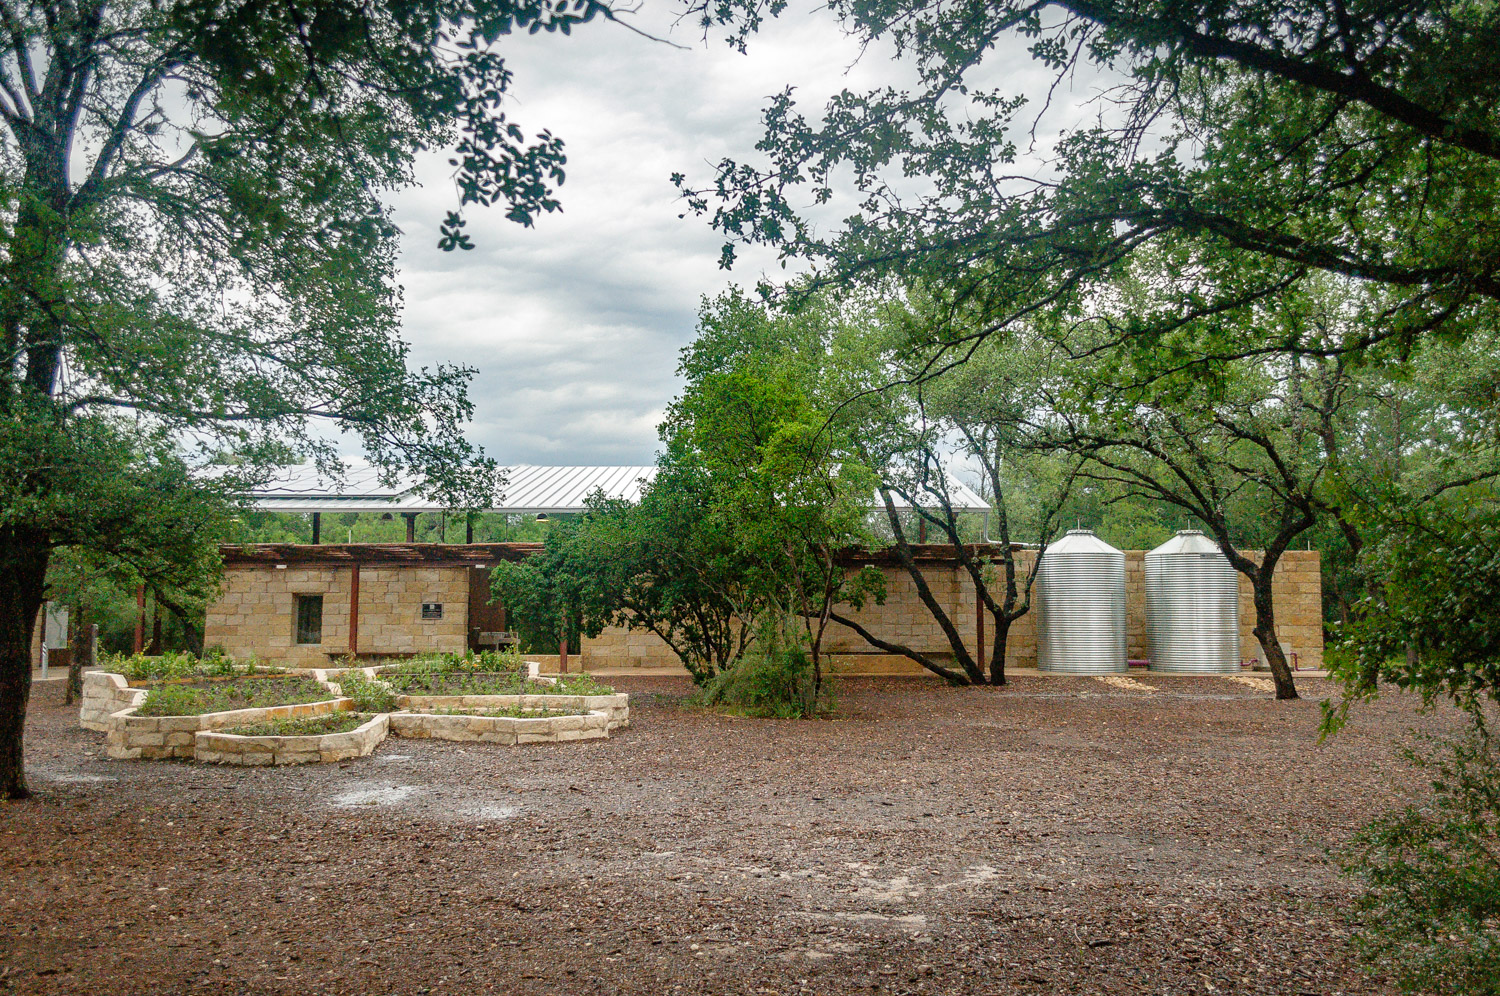 Free Wifi - The Urban Ecology Center and the Salado Outdoor Classroom offer free SAParks wifi.